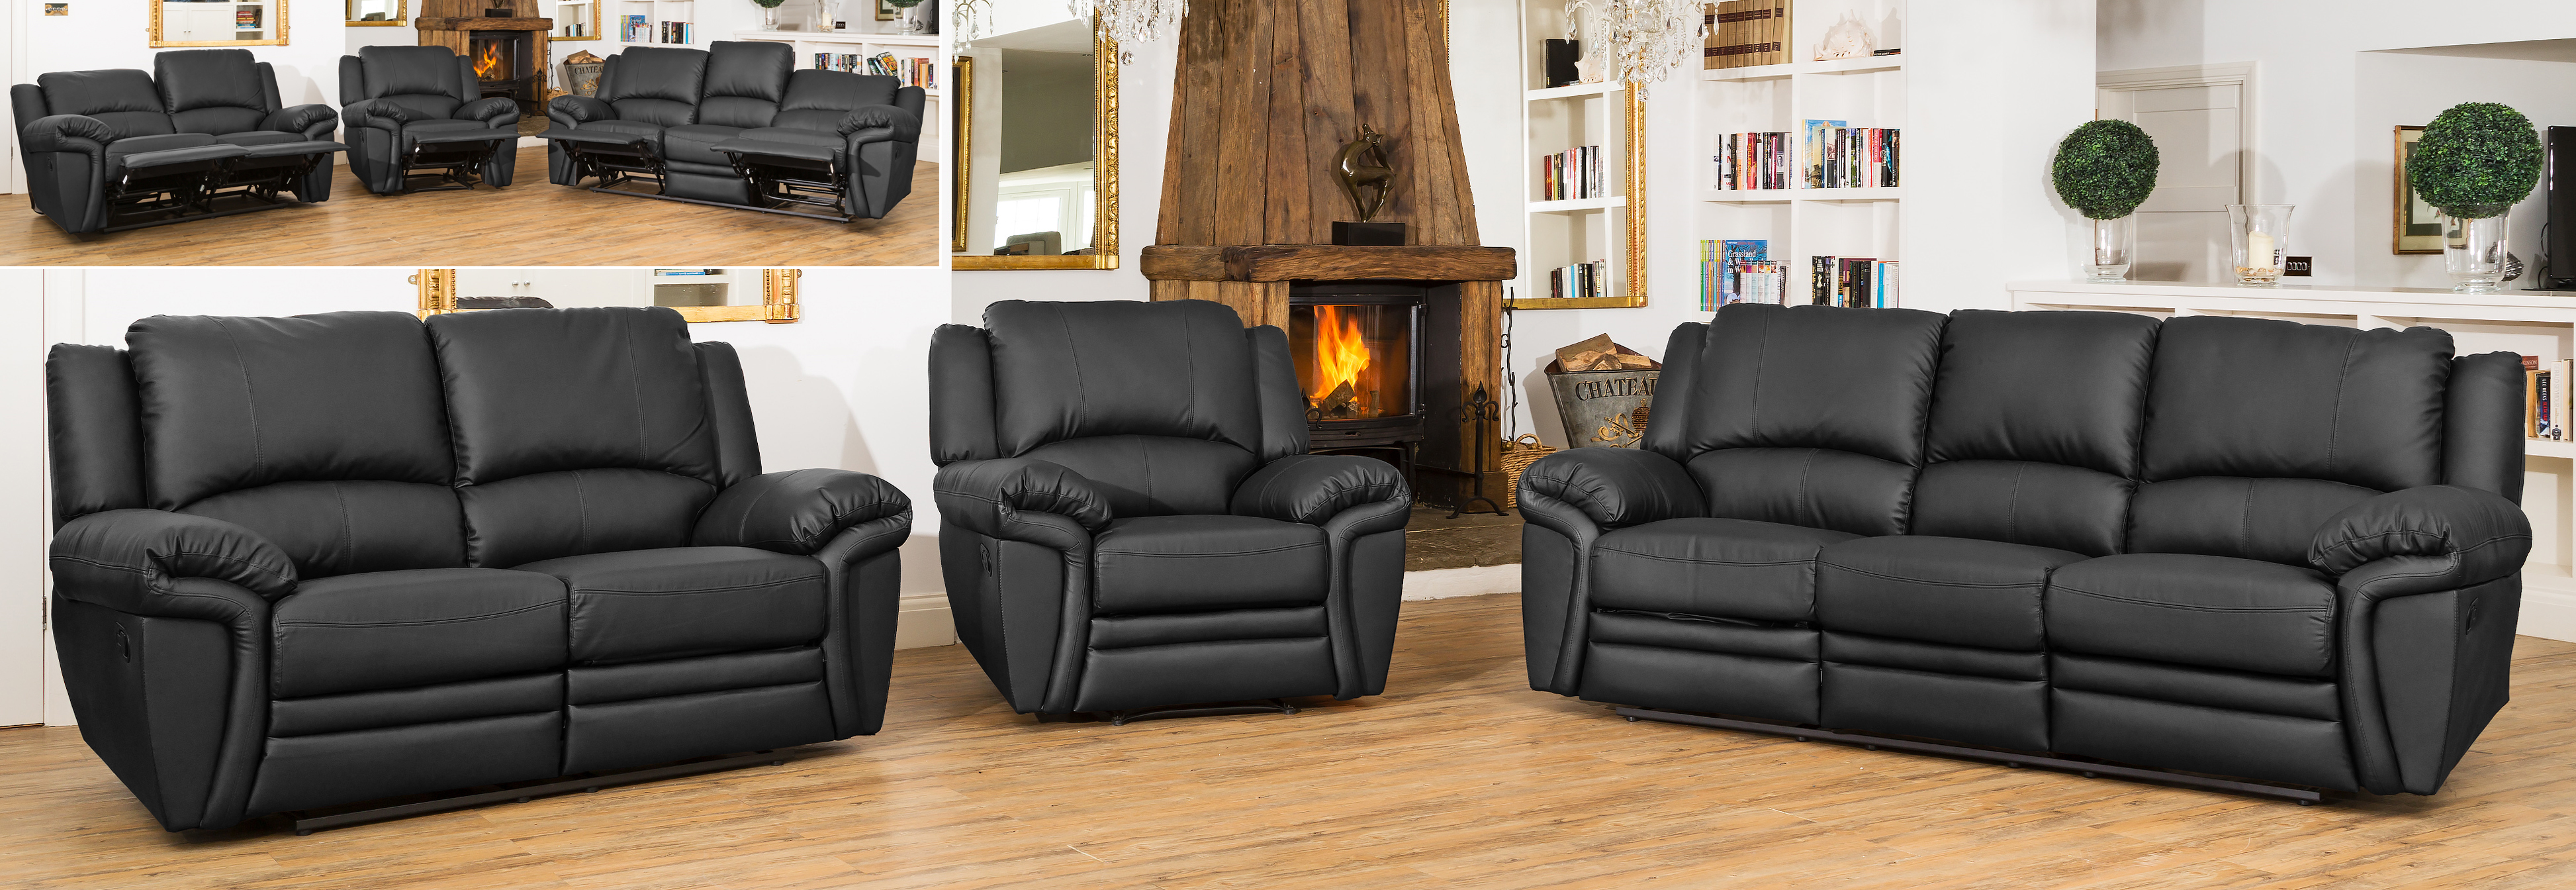 Fitzroy Reclining Suite black